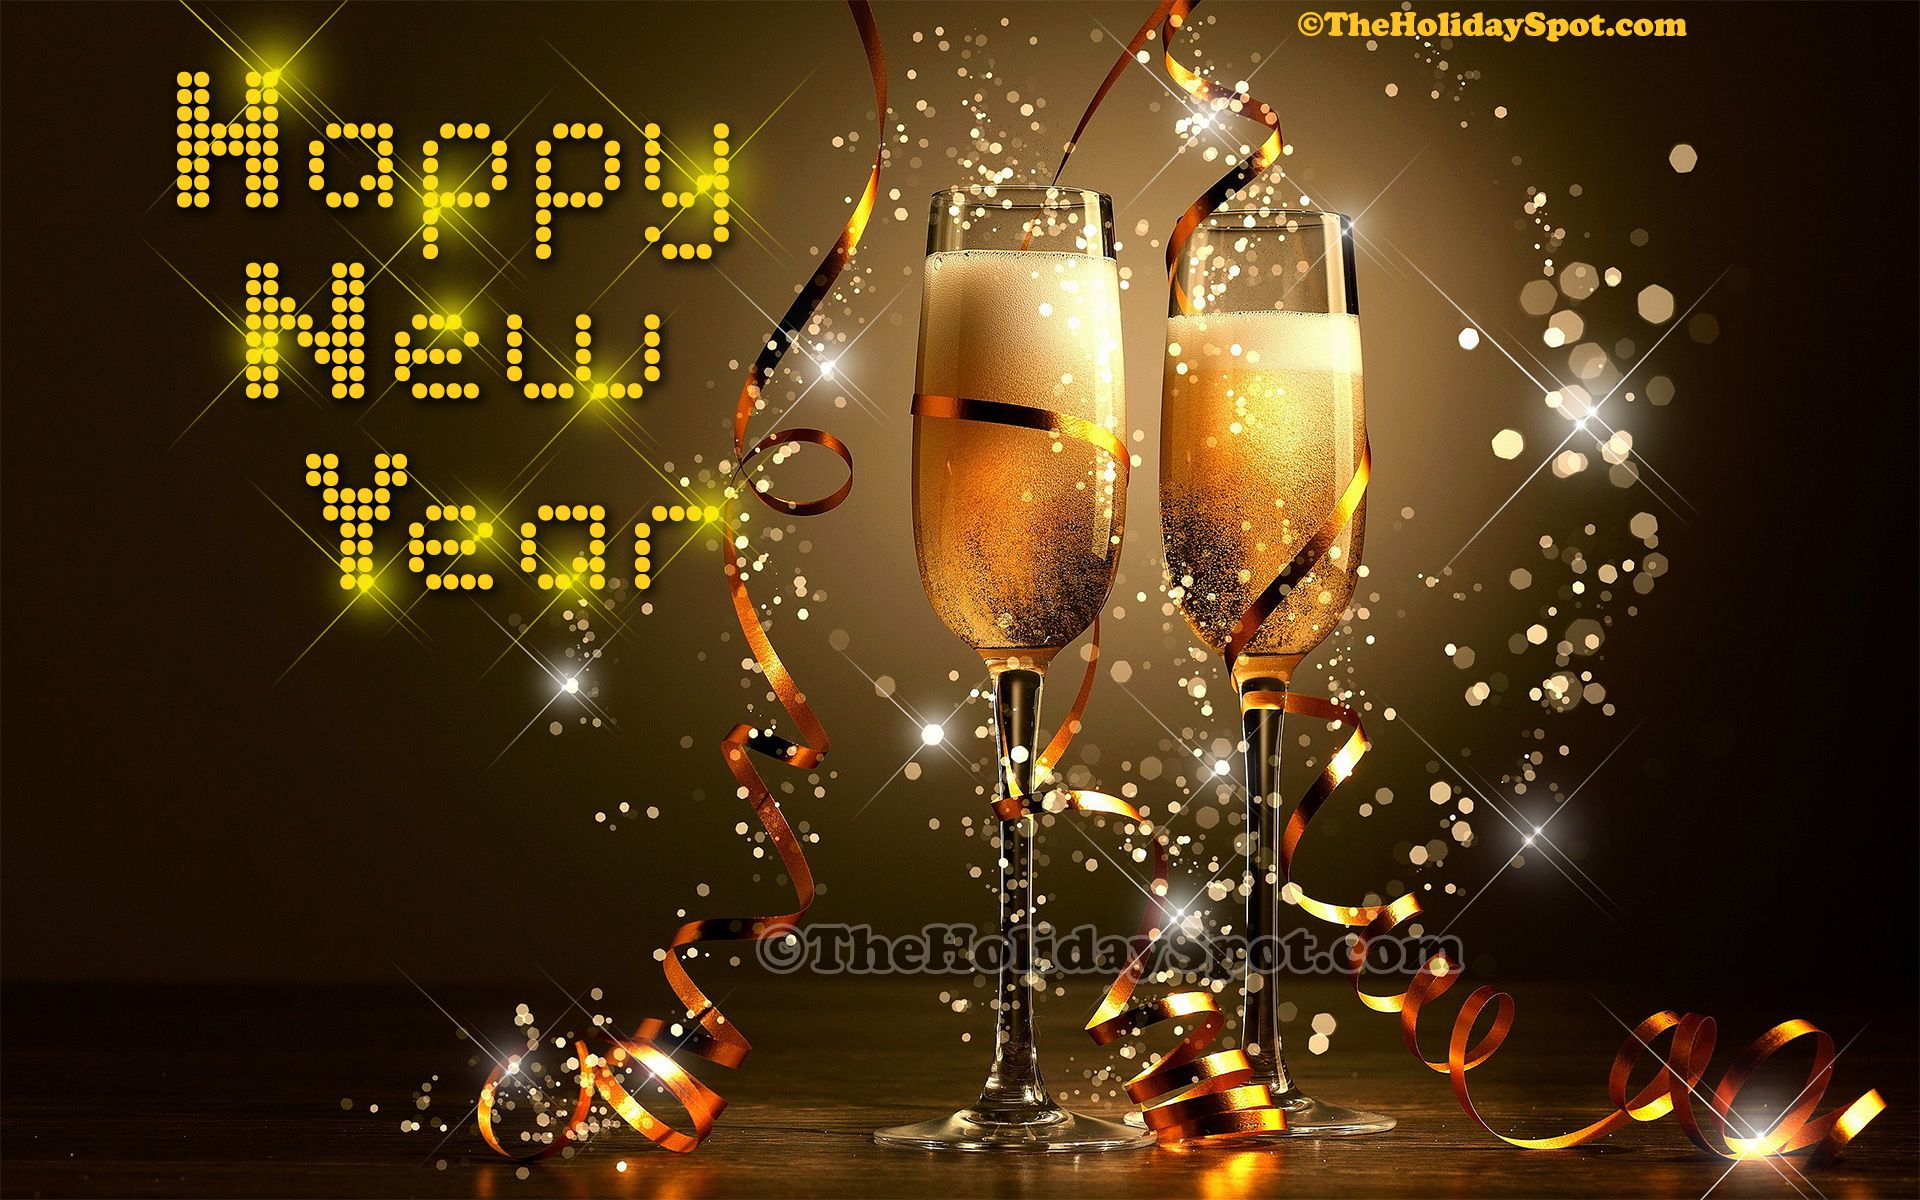 Celebration new year high quality wallpaper themed on new year celebration new year high quality wallpaper themed on new year celebration voltagebd Choice Image